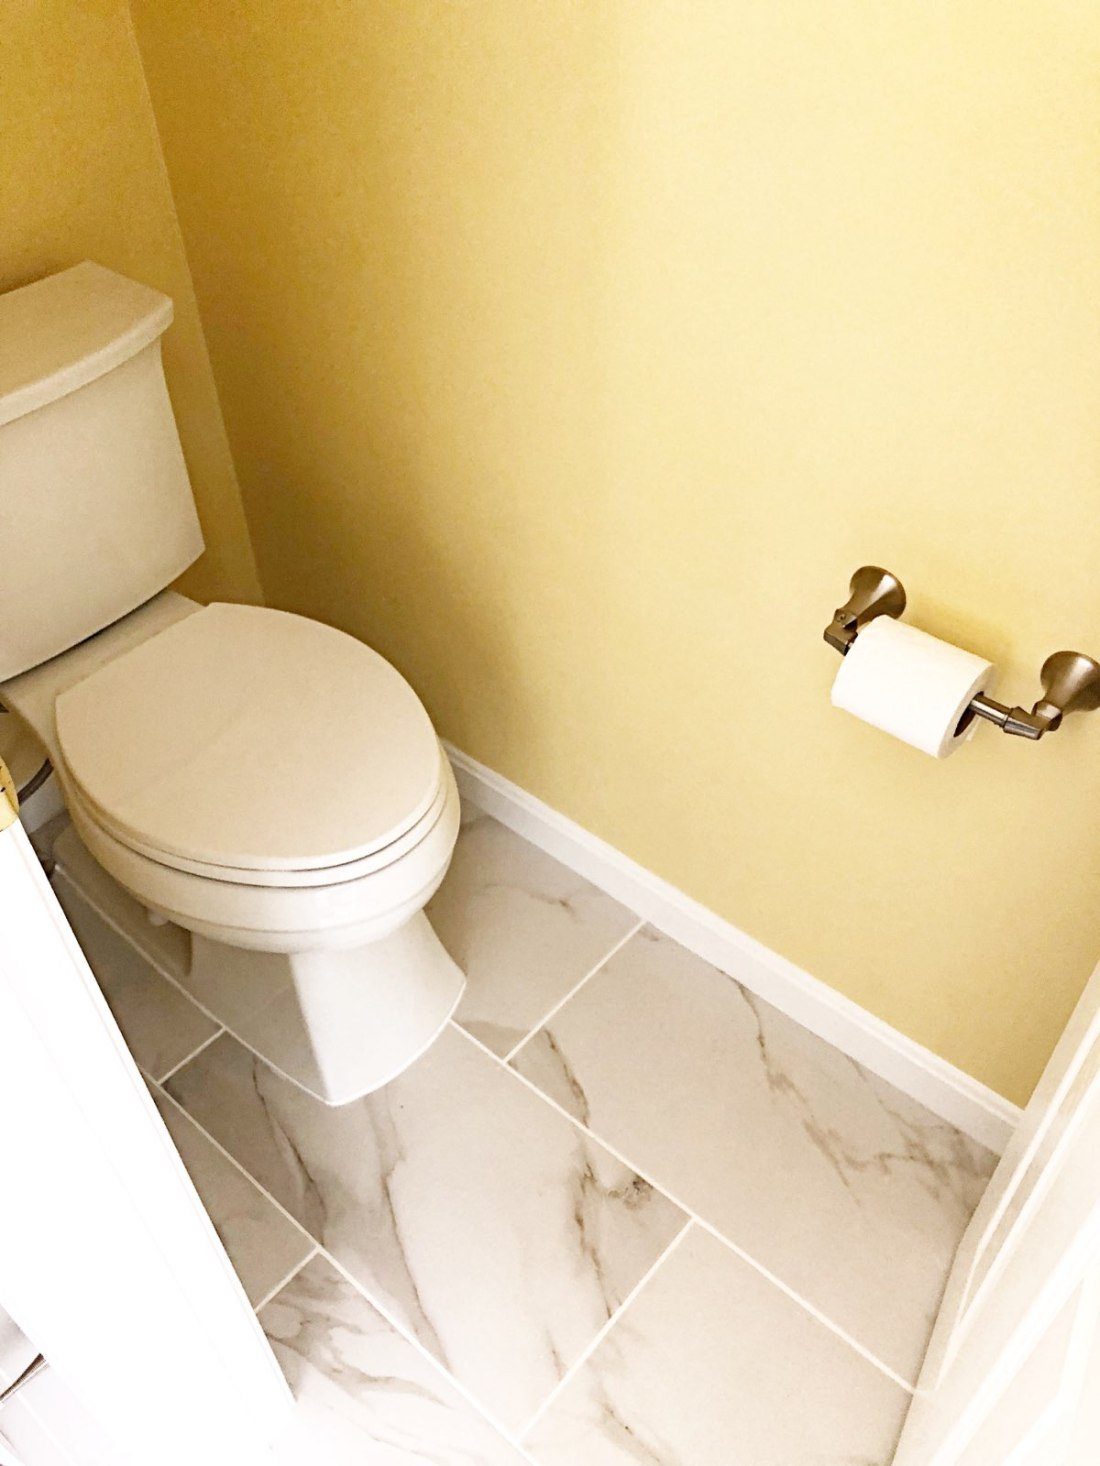 After Commode Room